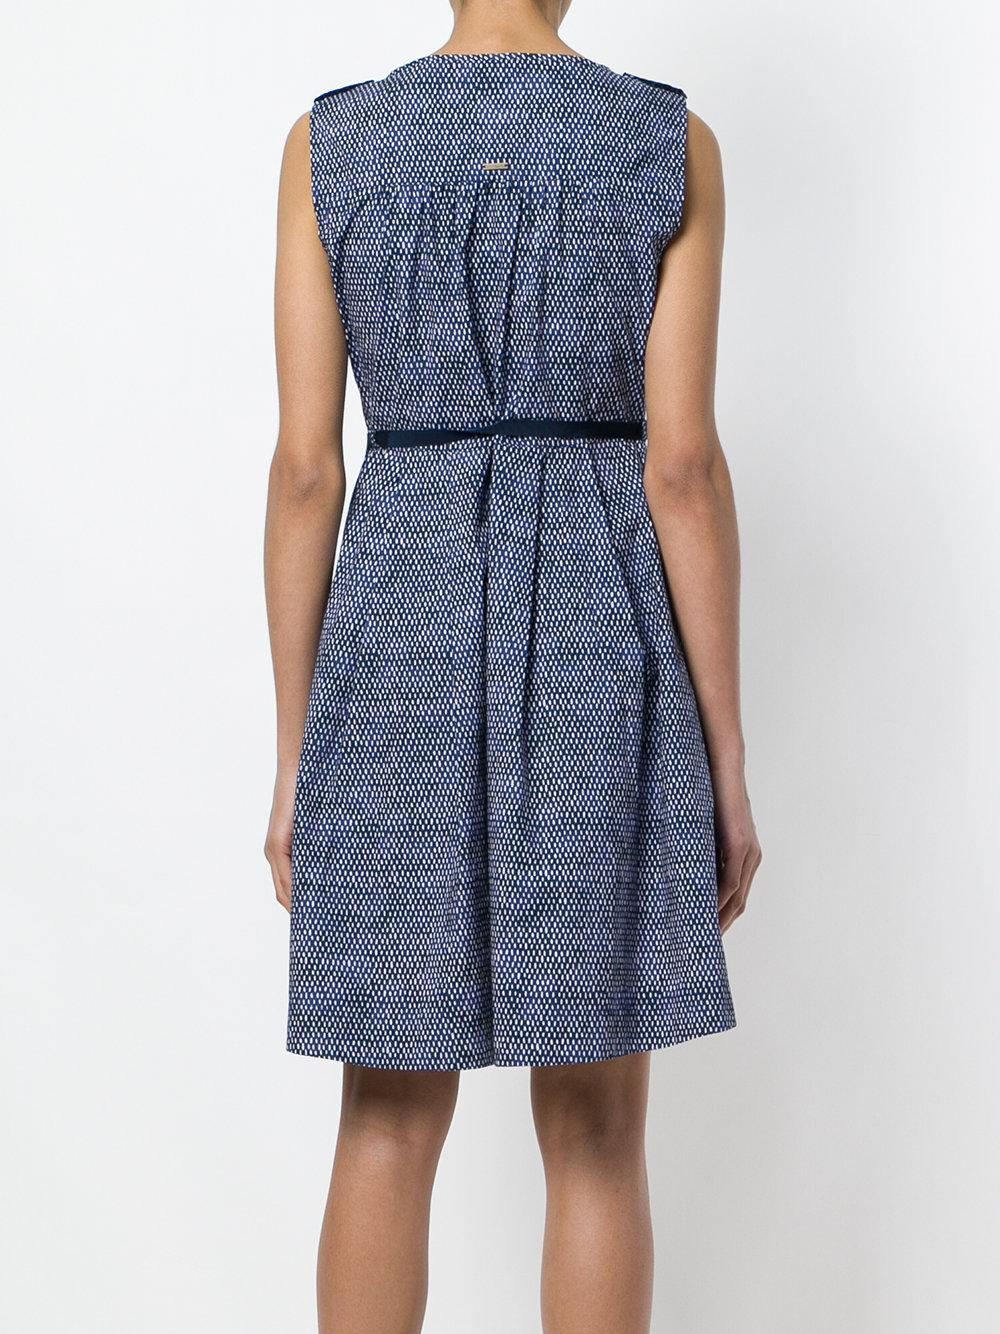 belted flared dress - Blue Woolrich Purchase Cheap Price With Mastercard Cheap Online 8nrHHG